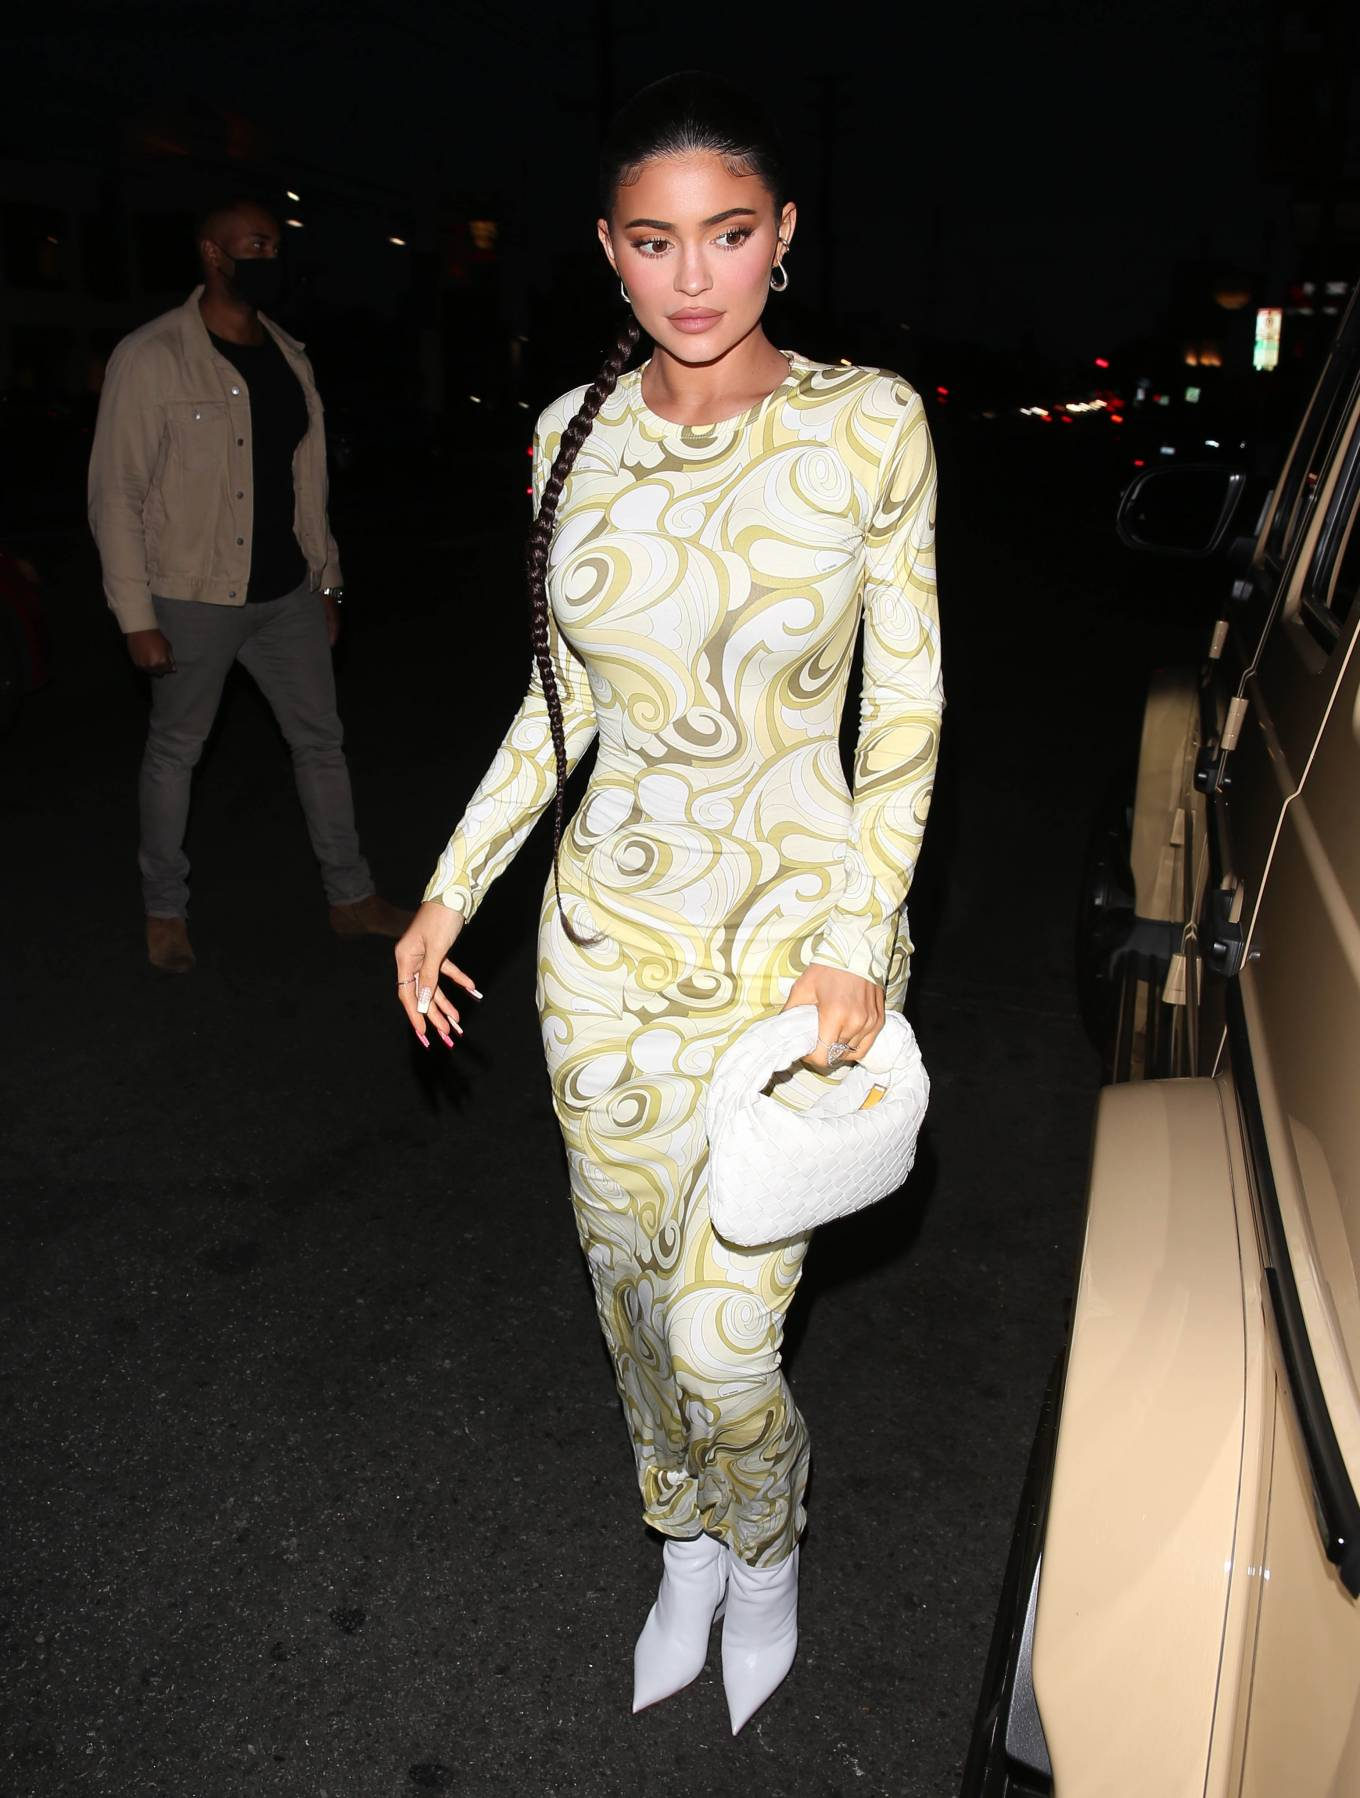 Kylie Jenner donning a figure hugging yellow dress which showed off her hour glass figure while going to have dinner at Nobu in West Hollywood